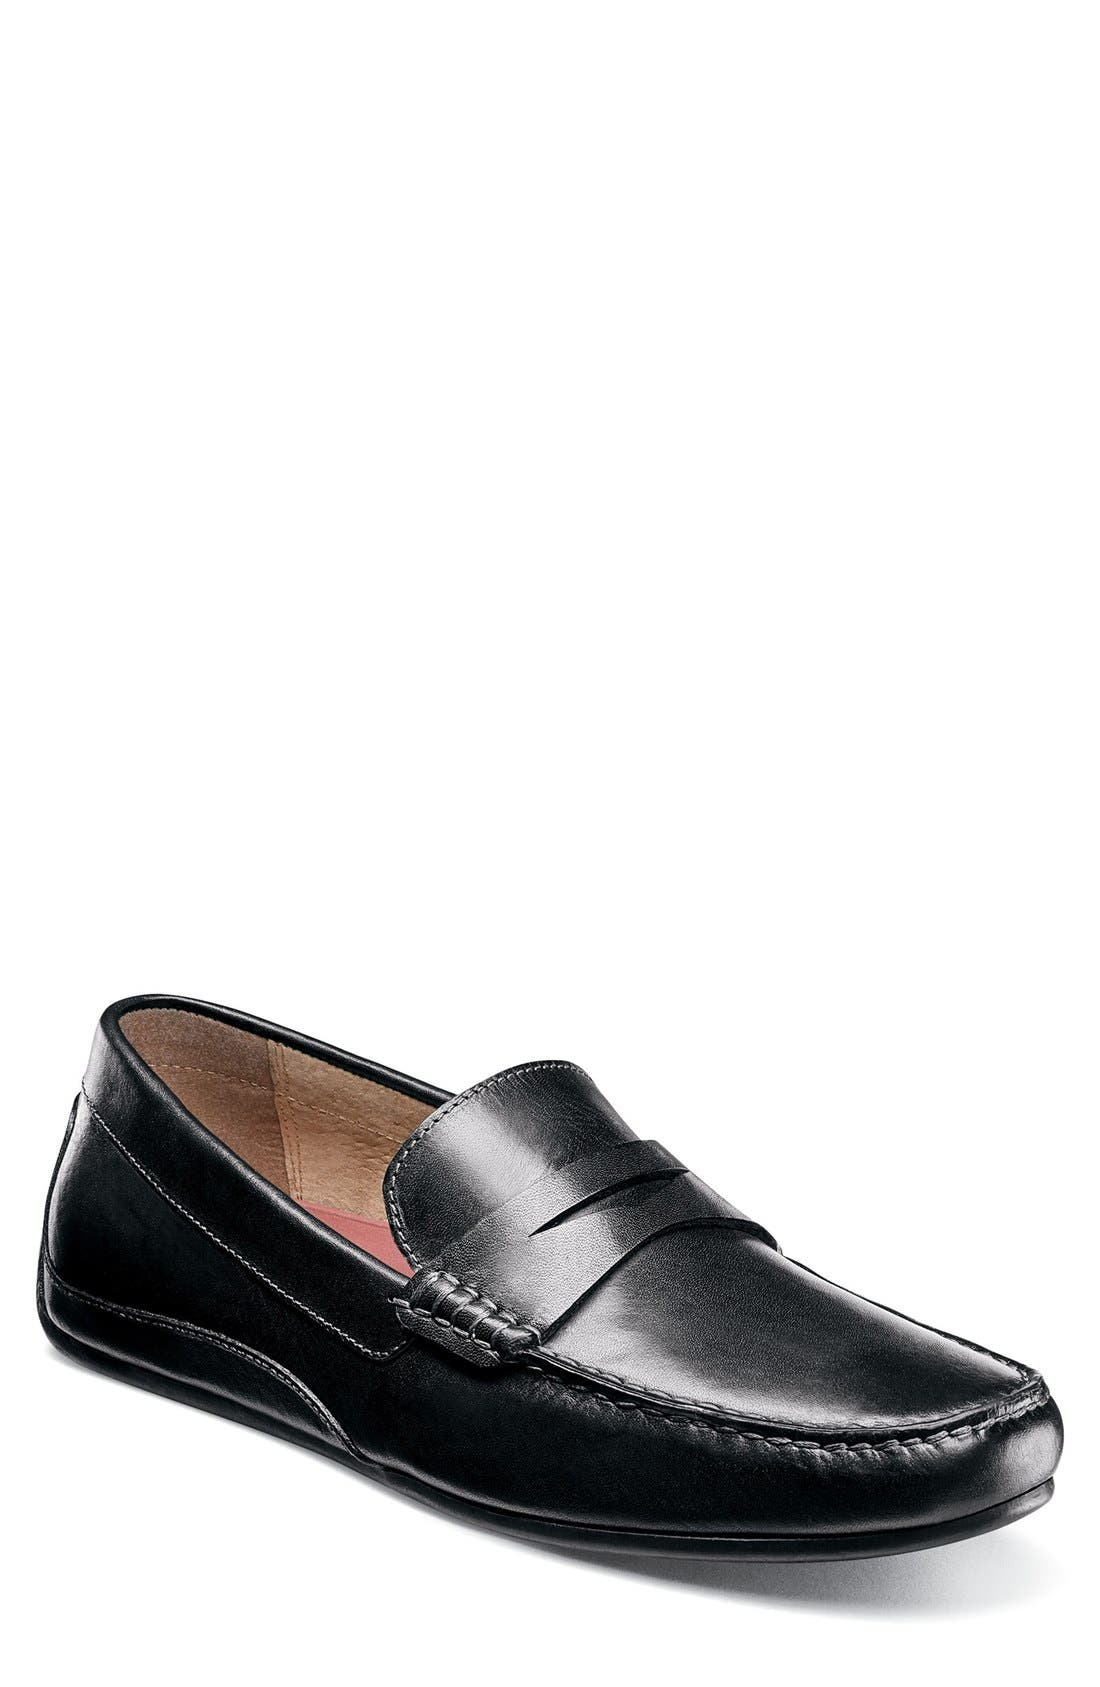 Oval Driving Shoe,                             Main thumbnail 1, color,                             Black Leather